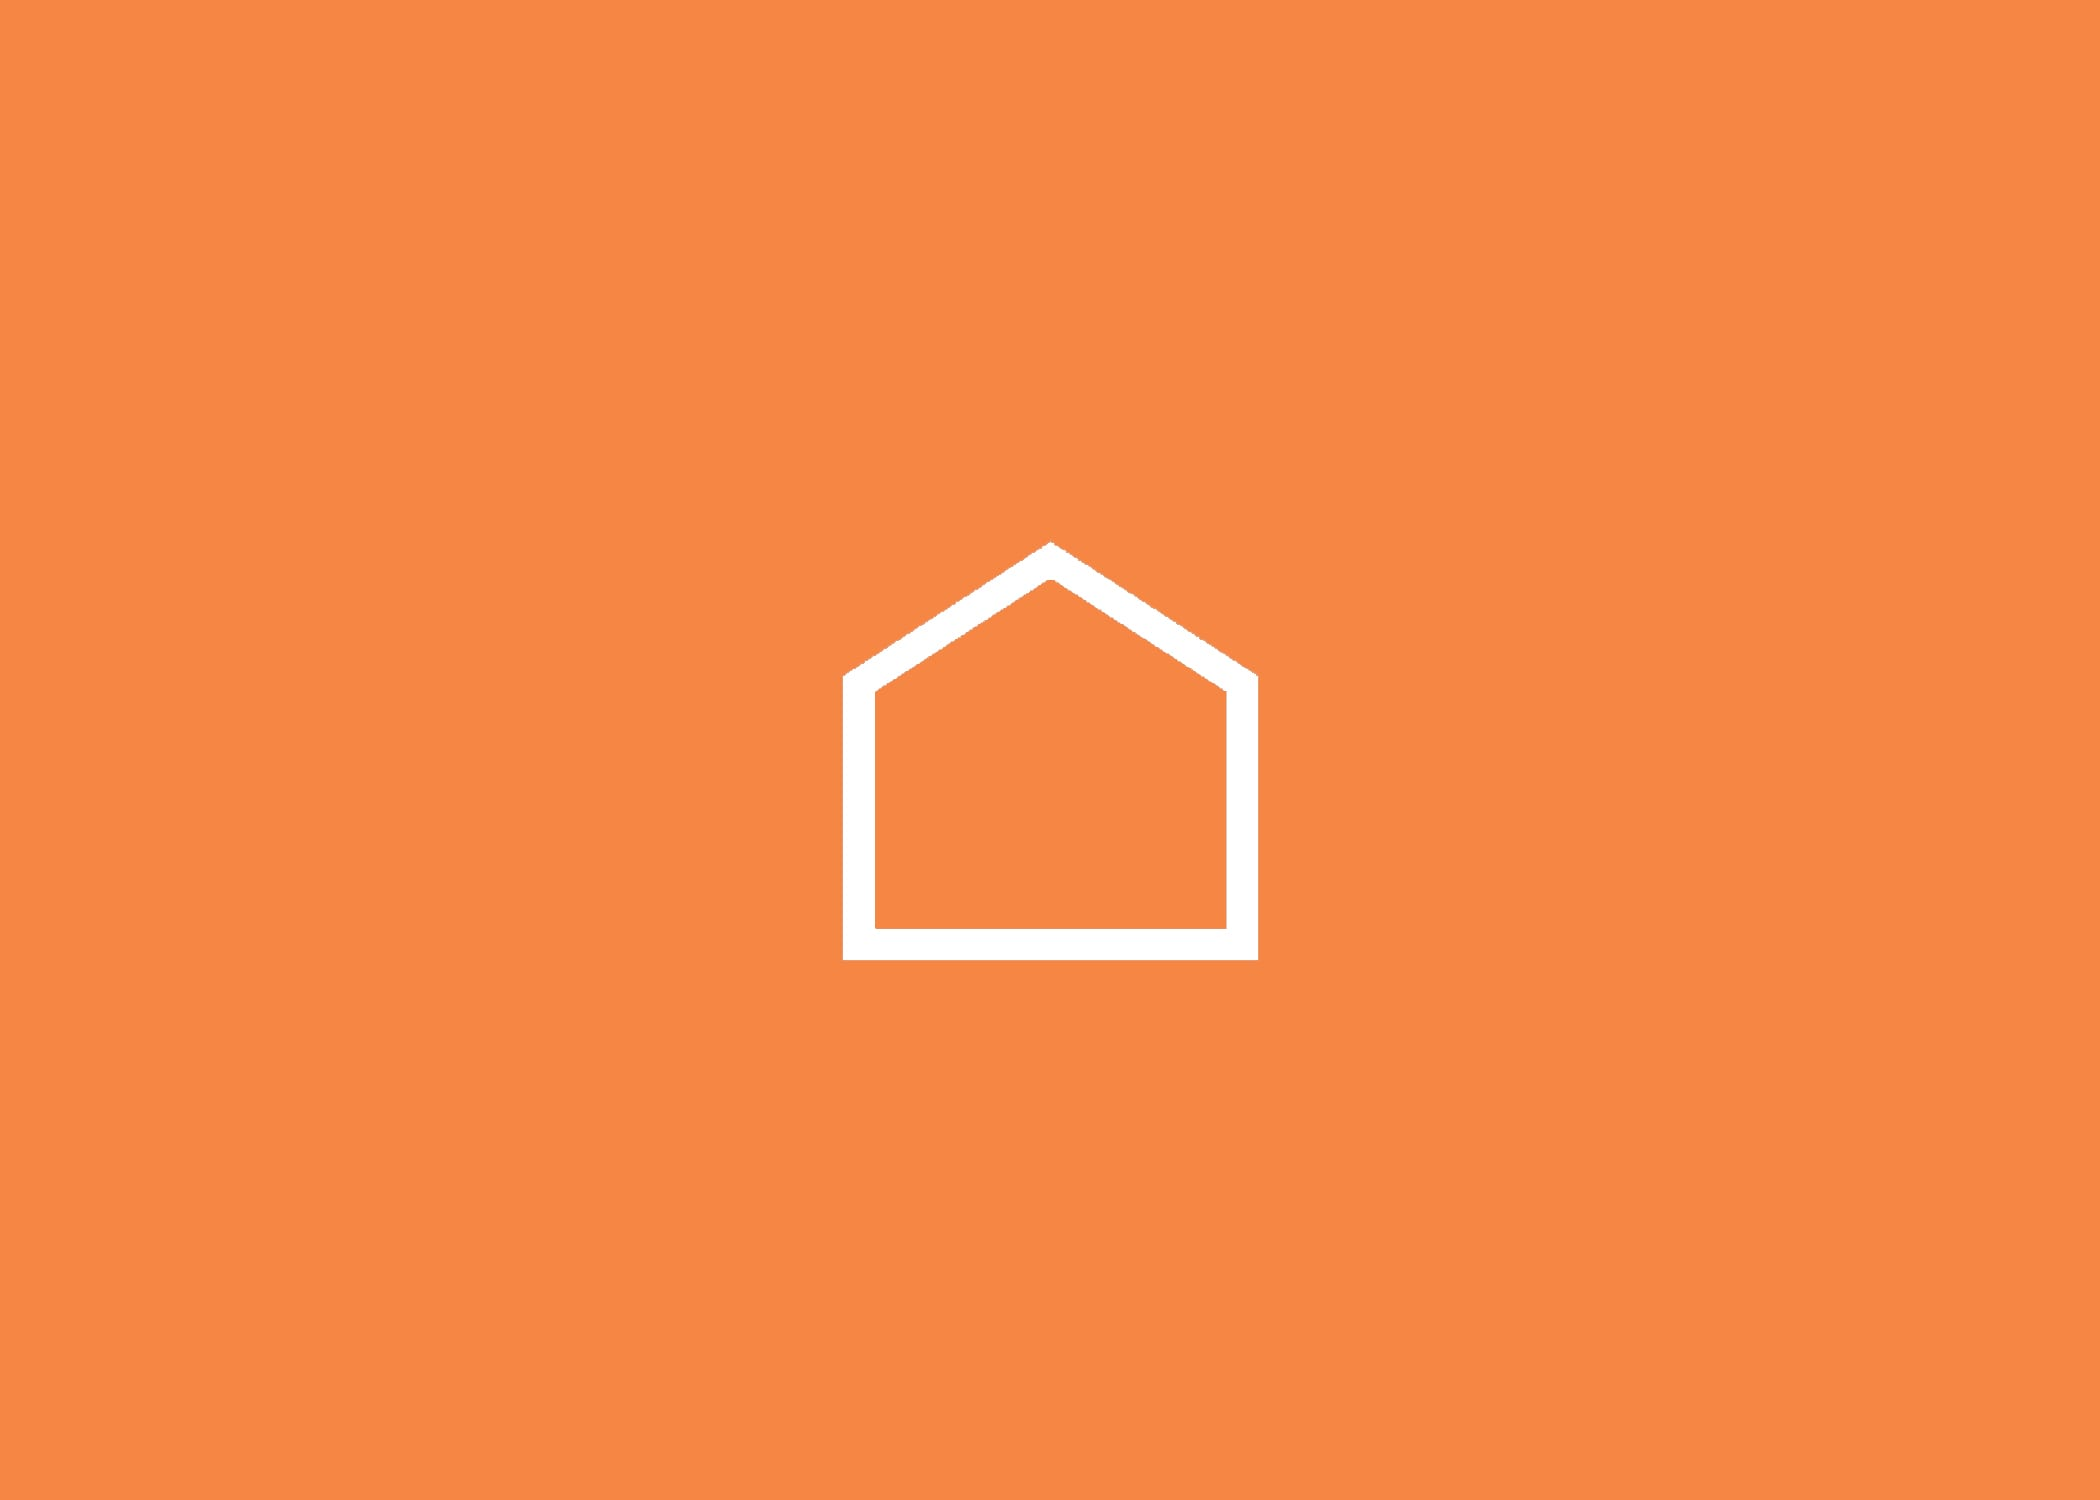 Every Home for Christ icon